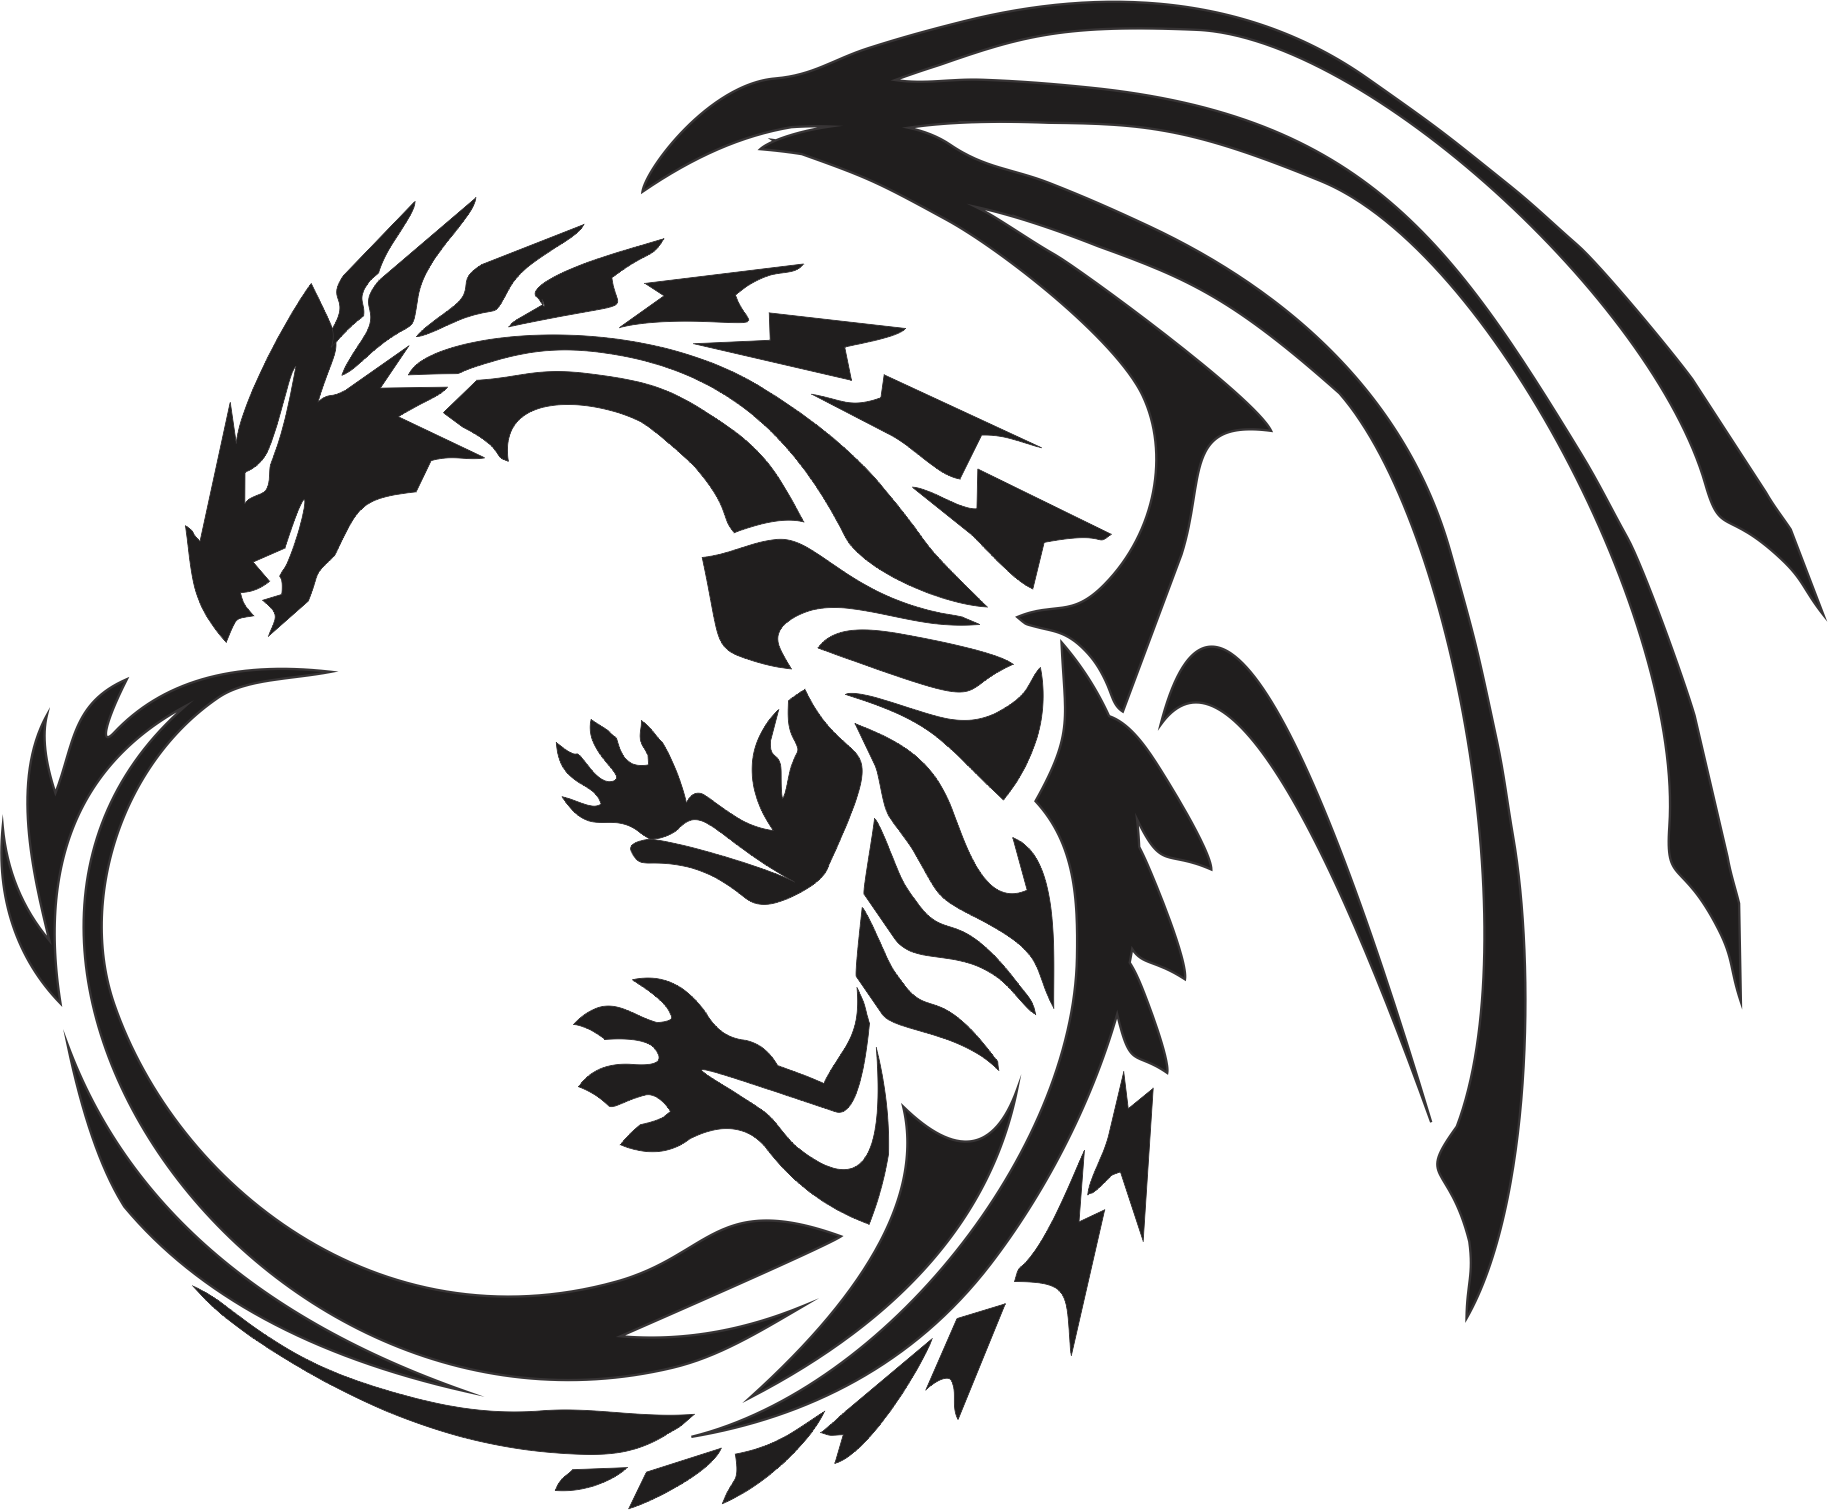 Dragon Png image #20238 - Dragon PNG